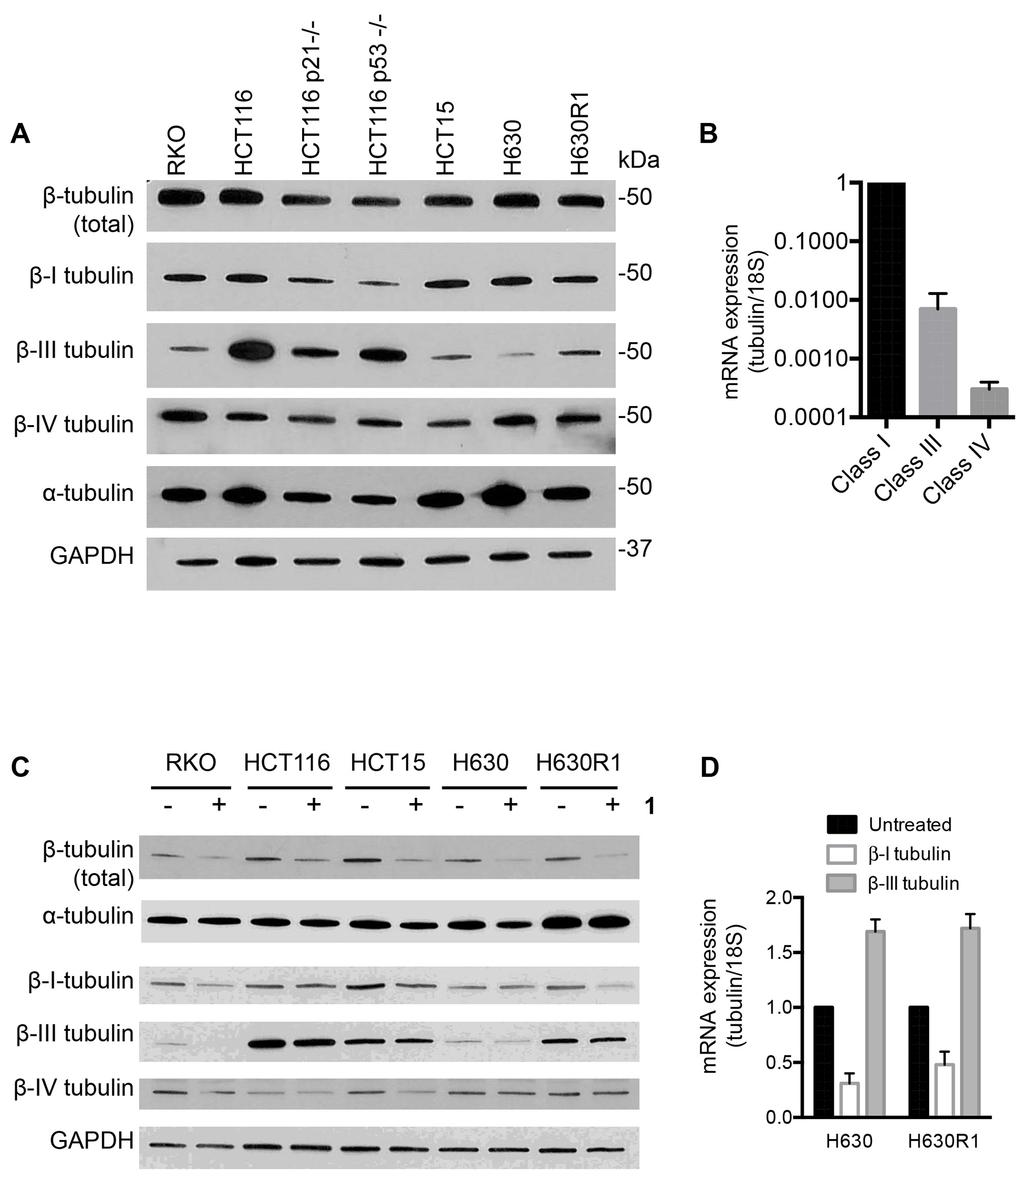 Figure 4: Basal tubulin protein expression in human colorectal cancer cell lines. A. Immunoblot analysis of β-tubulin isotypes. B. Basal mrna expression of β-tubulin isotypes in H630 cells. C.